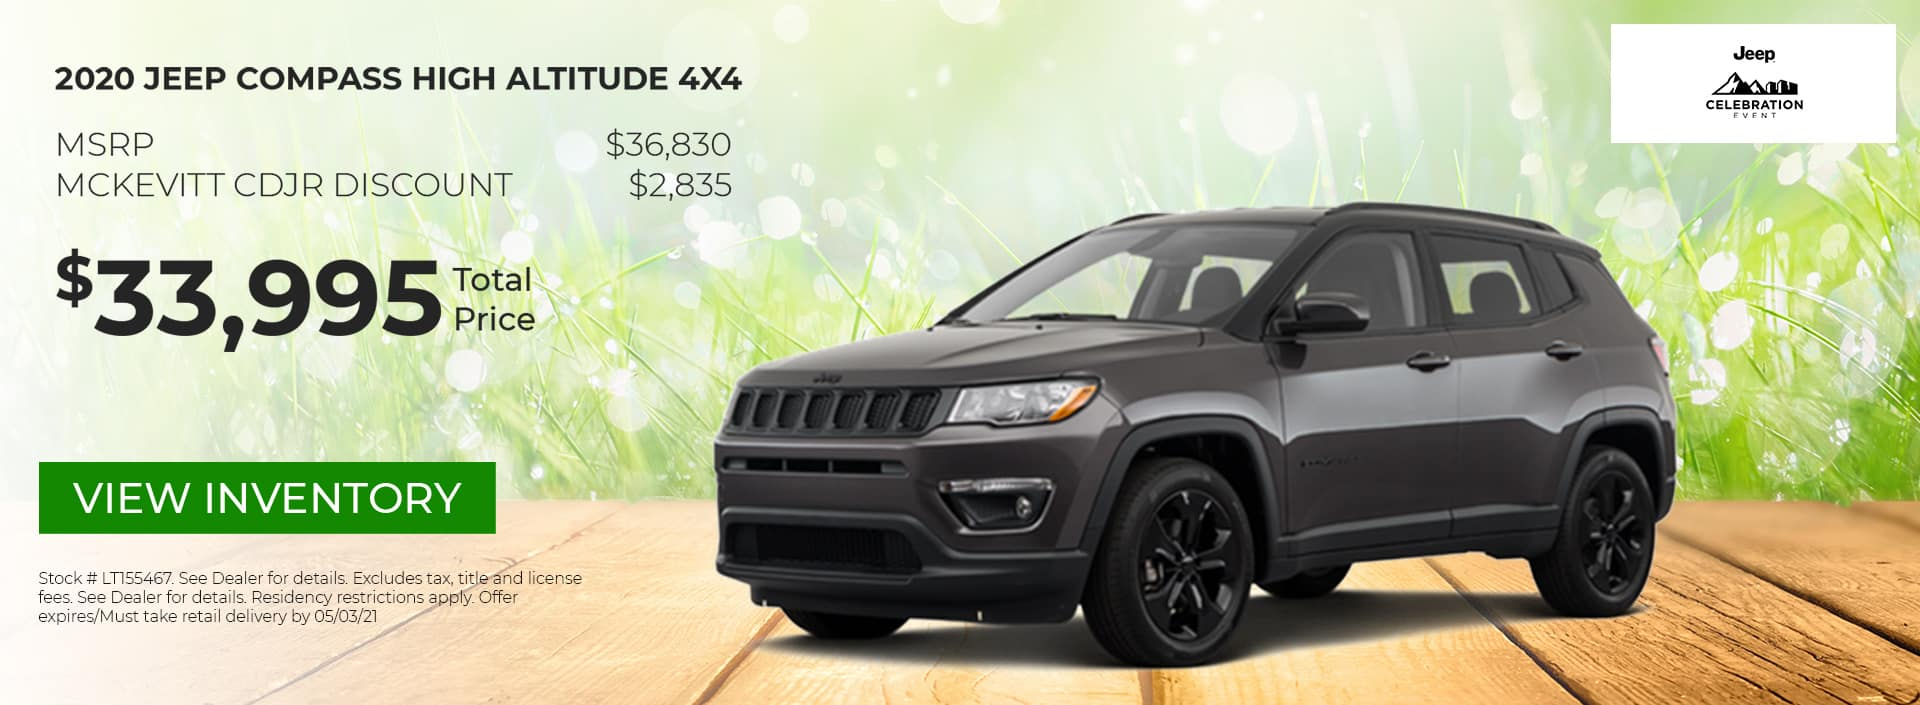 Jeep Compass Altitude HP